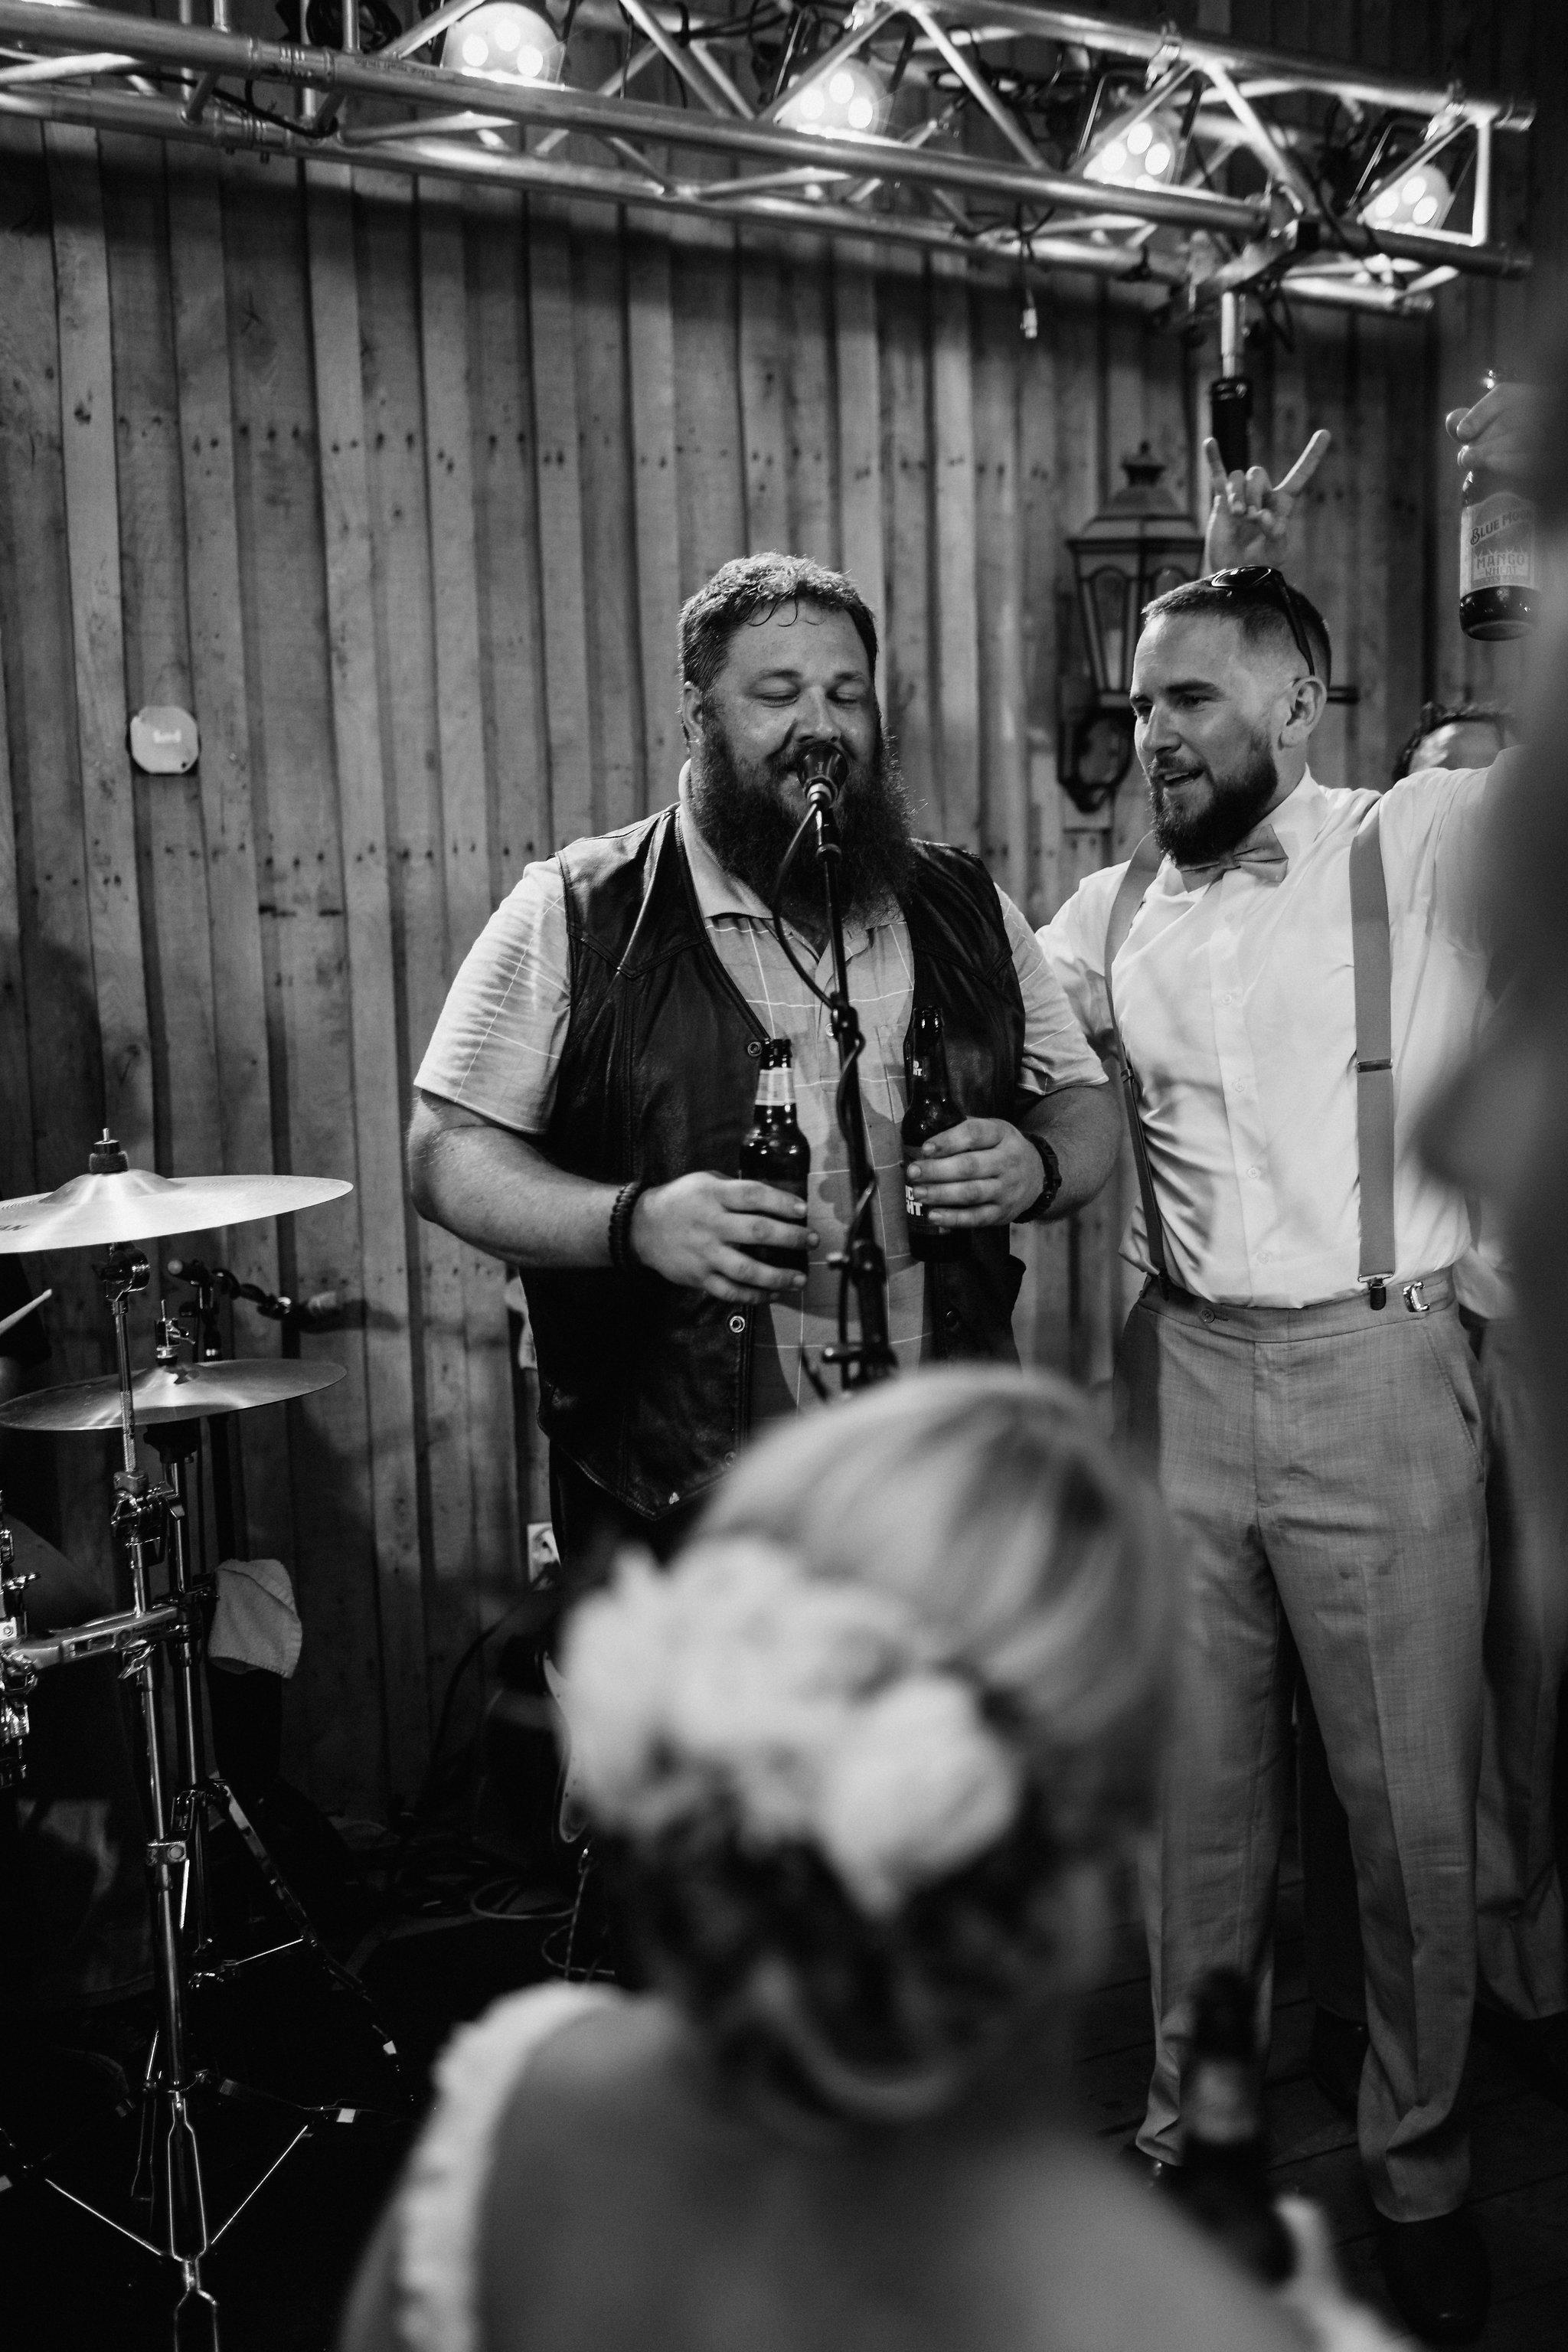 Bethany&TimmyMarried2017-07-07at19.28.35PM9.jpg